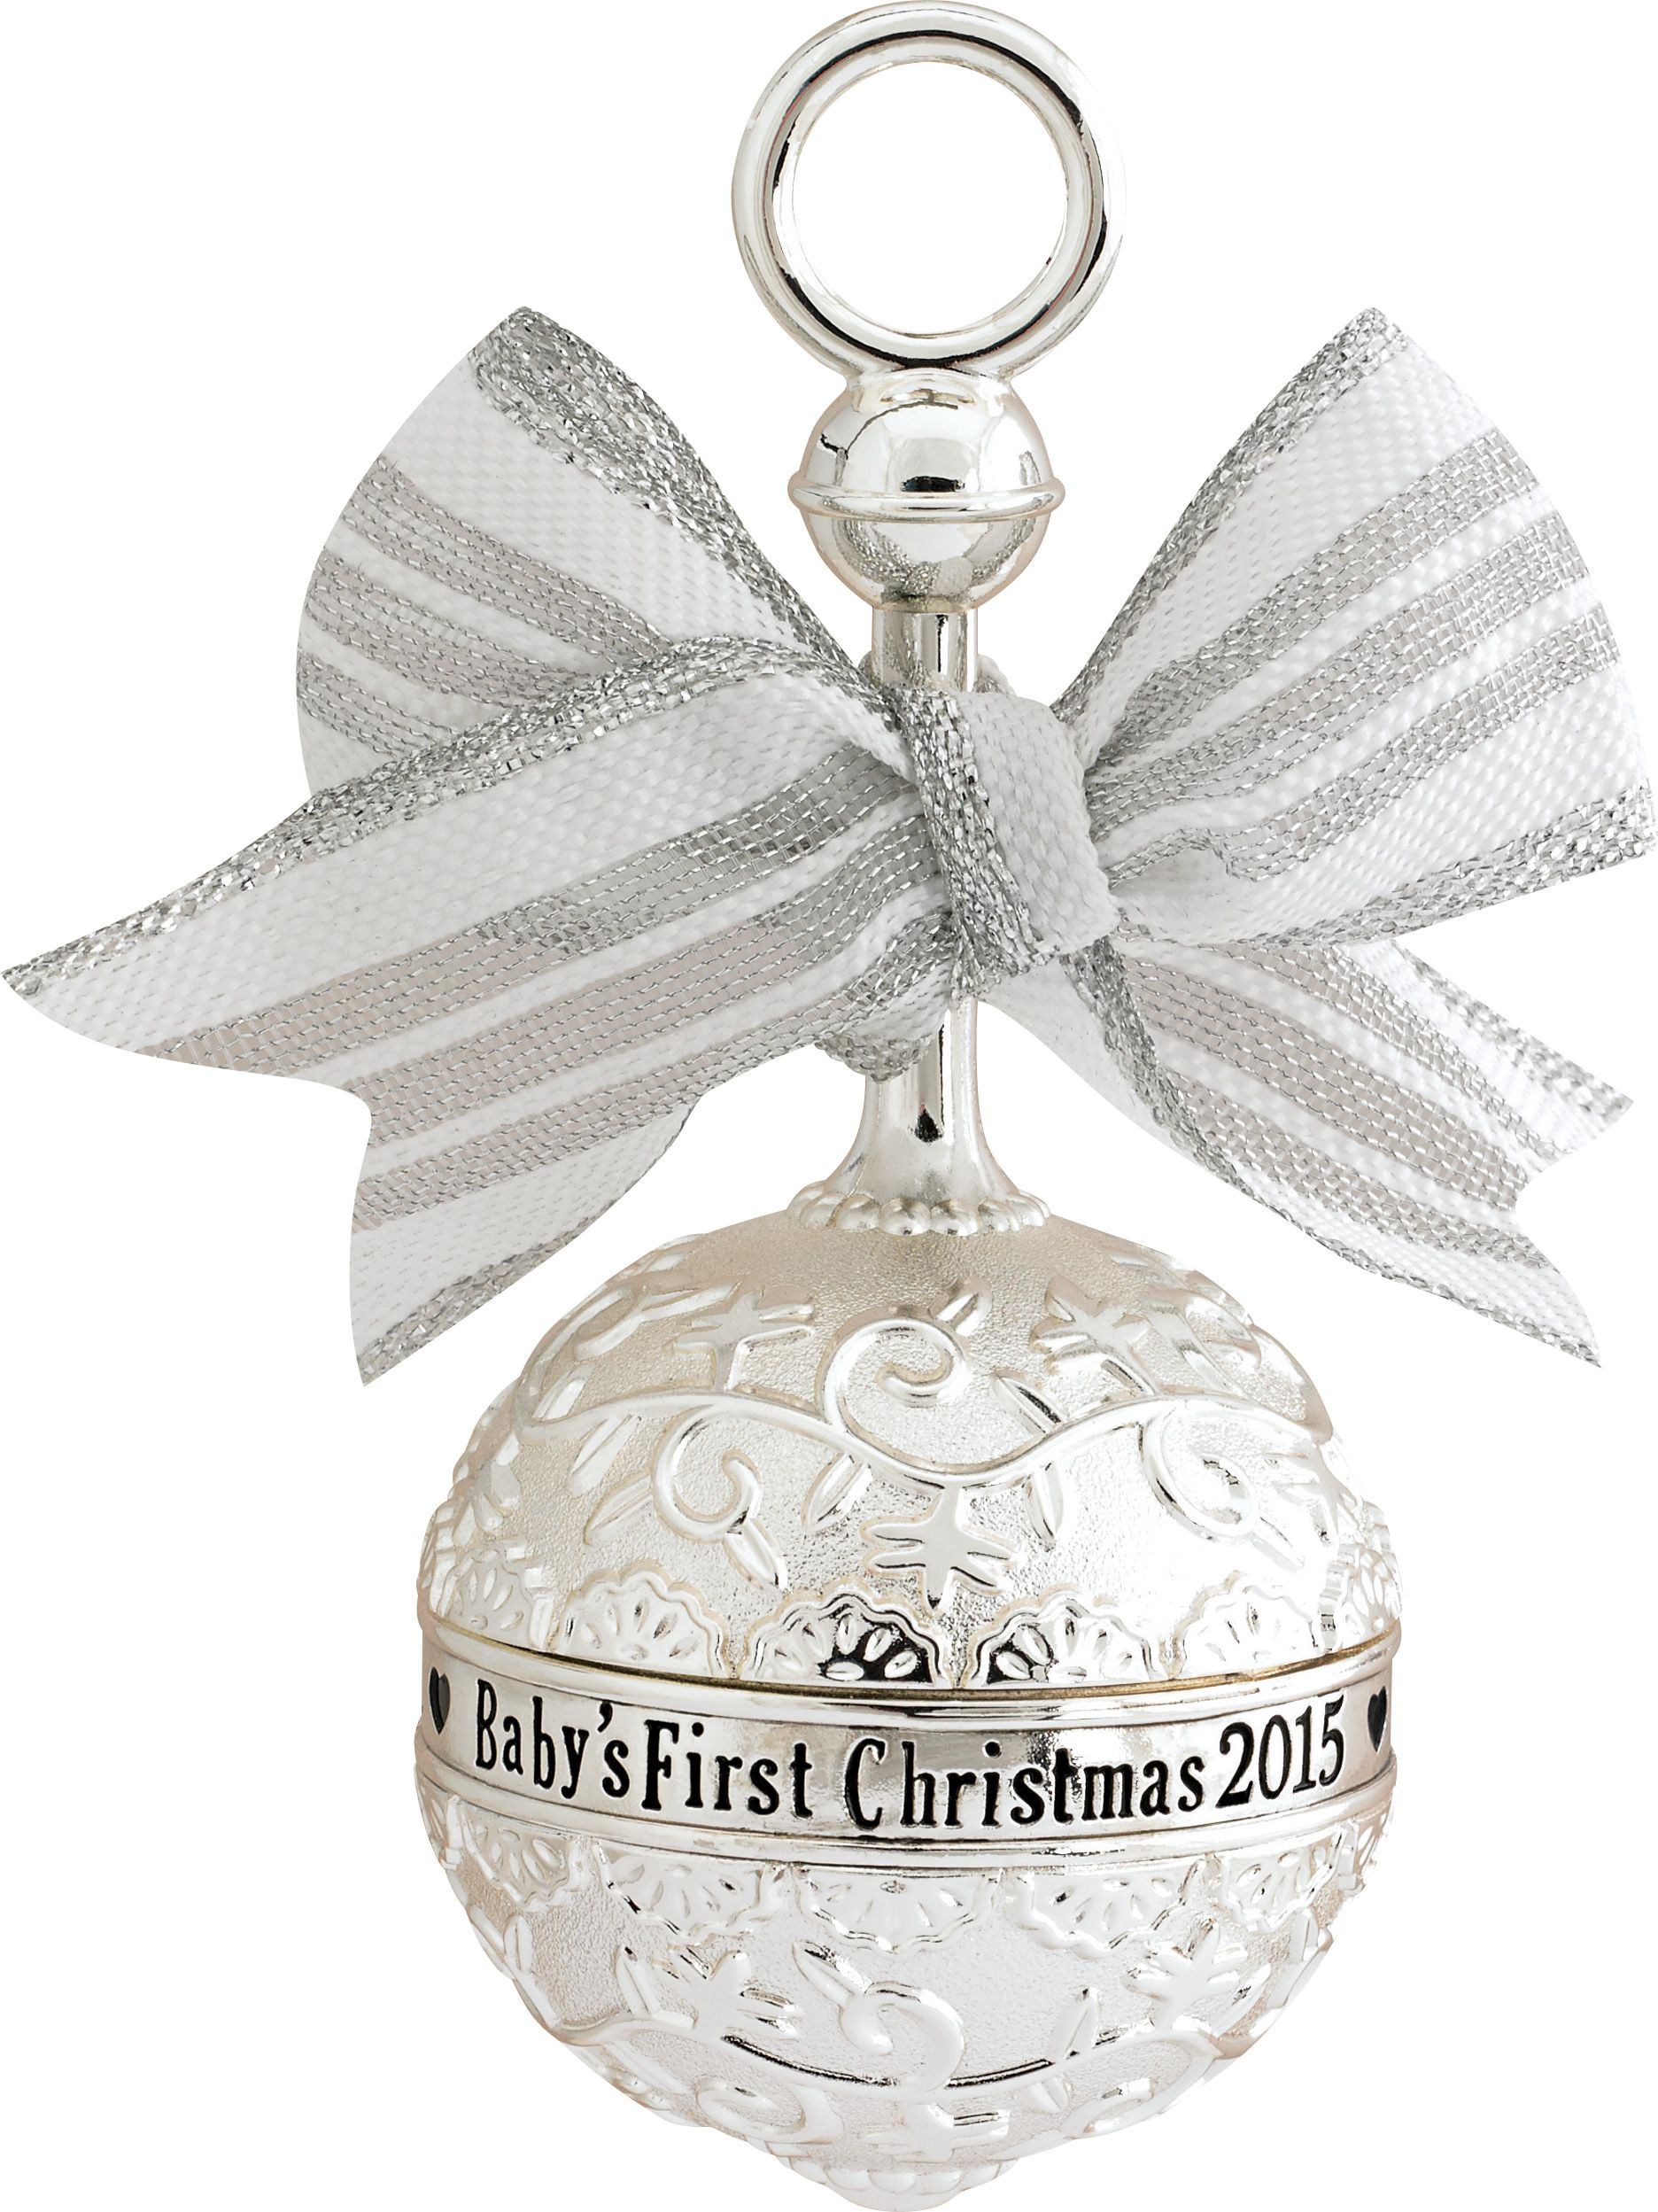 Baby S First Christmas Ornaments To Trim The Tree Baby First Christmas Ornament Baby Christmas Ornaments Baby S 1st Christmas Ornament